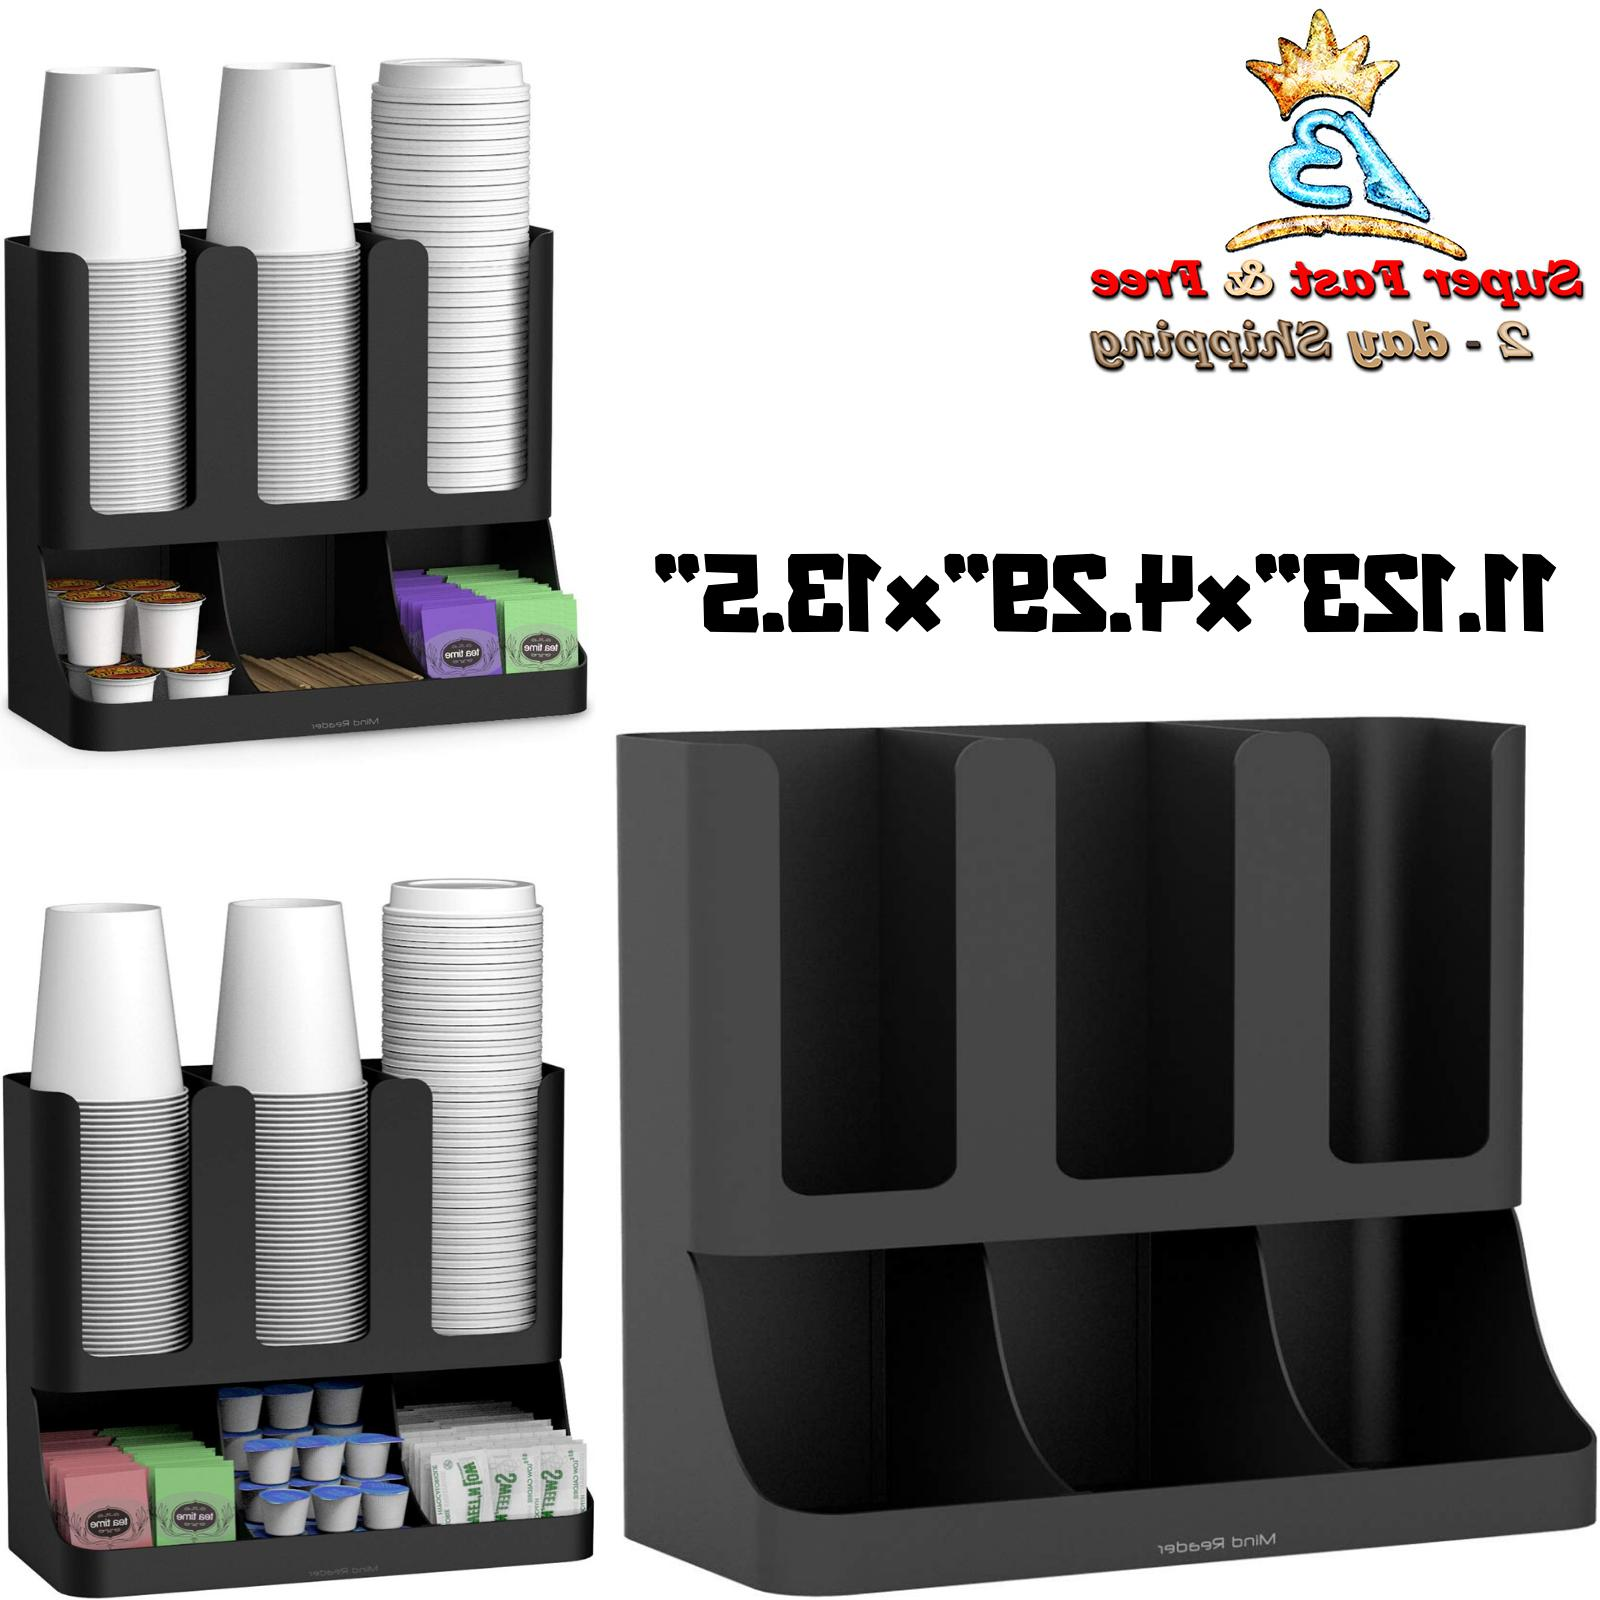 Coffee Drawer Storage Condiment Accessory Cup Holder Rack Ho